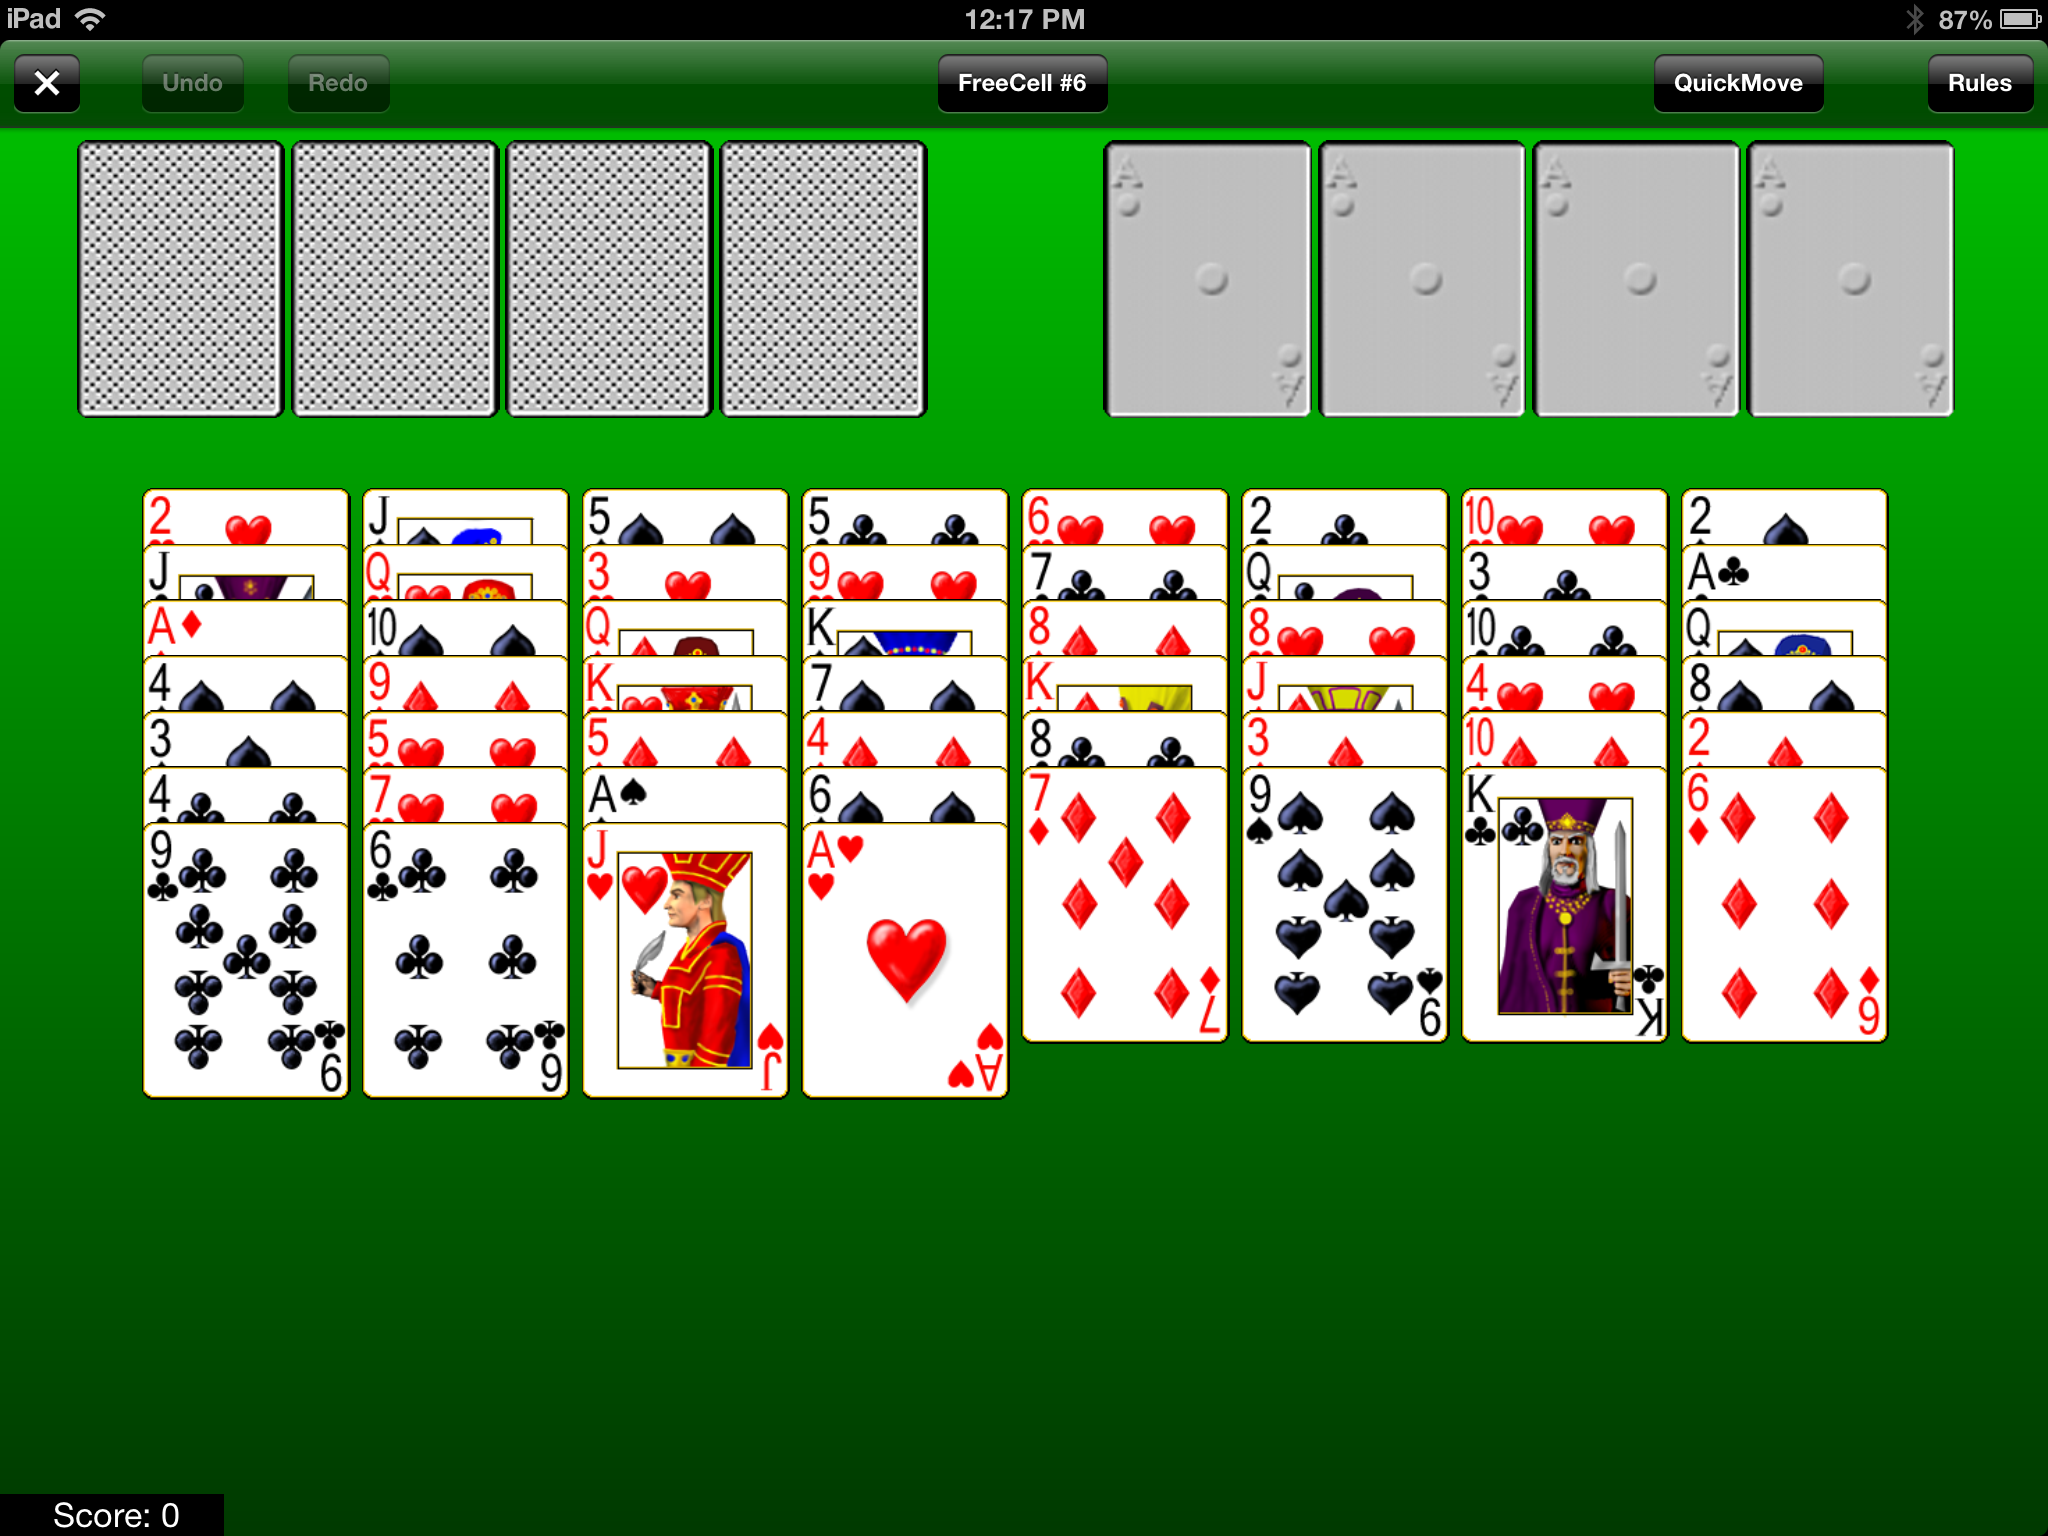 freecell green